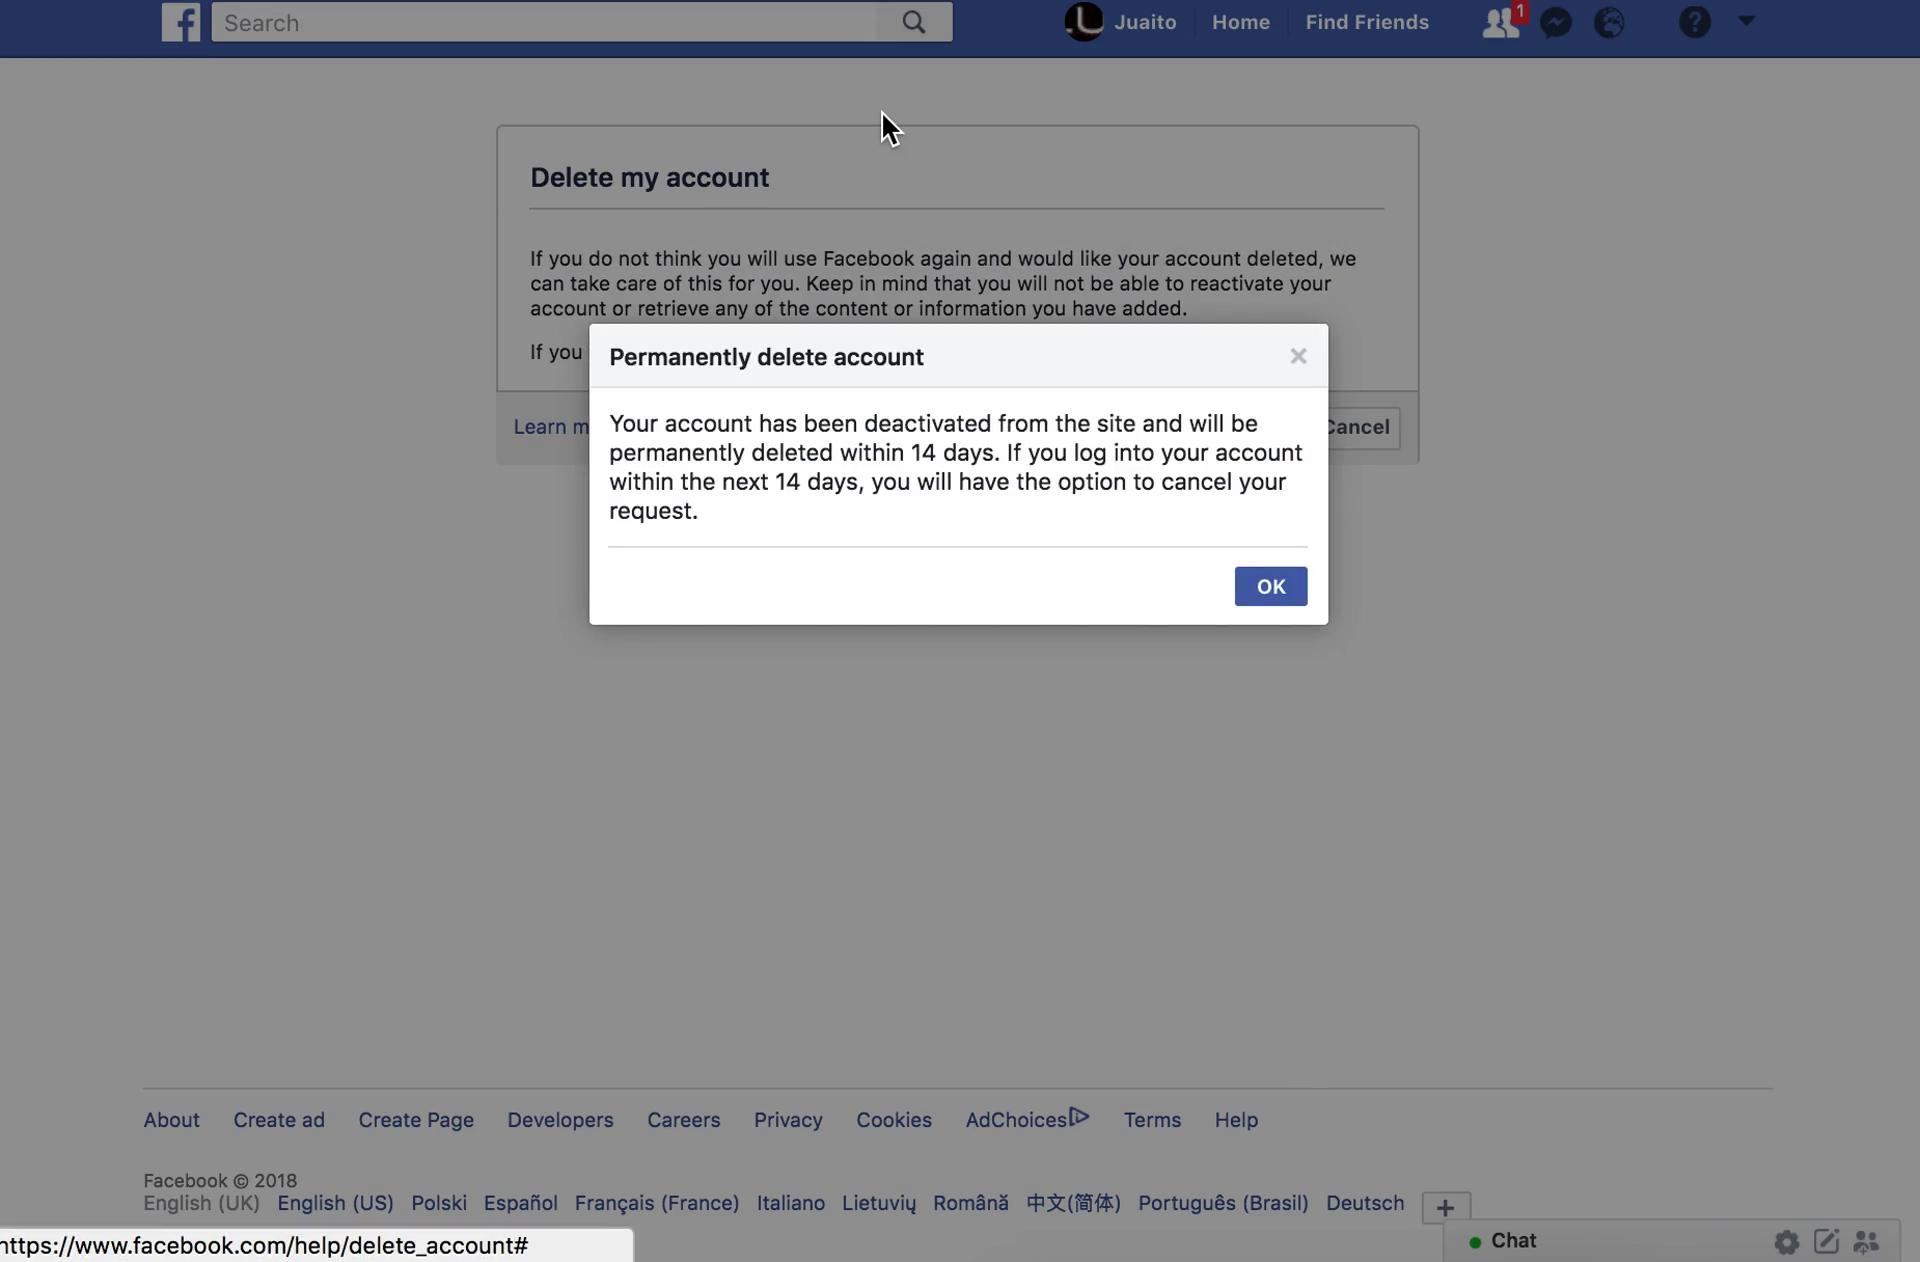 Facebook's account successfully deleted message